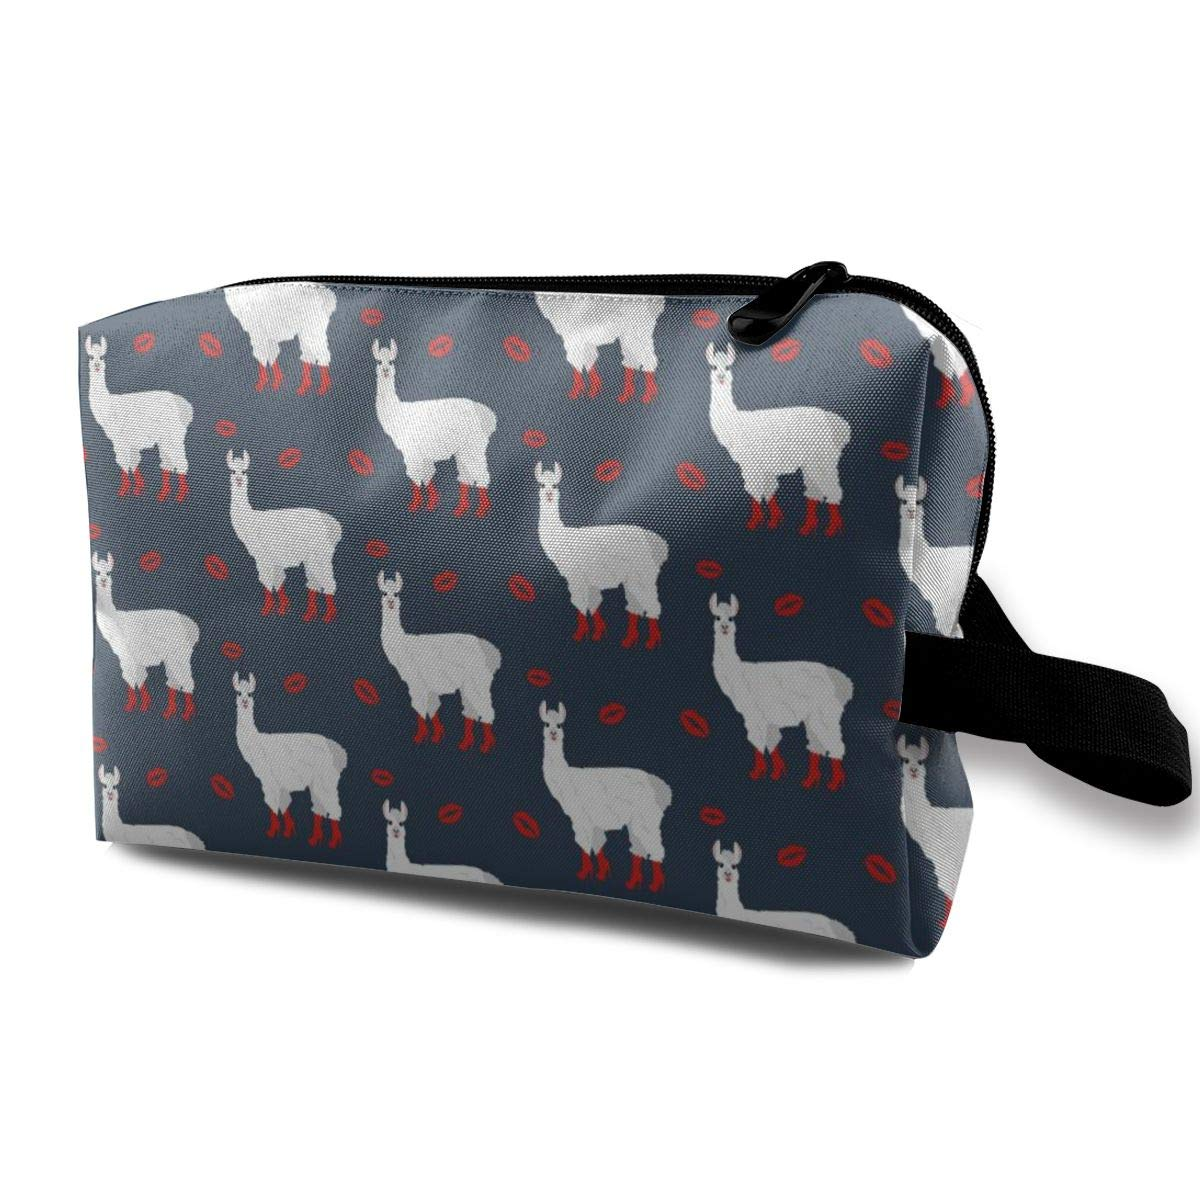 Llama With Red Boots On Lips Background Portable and Waterproof Cosmetic Bag Purse Travel Toiletry Bag Organizer Bag Pencil Case,for Cosmetic Lipstick Coin Jewelry Electronic Accessories